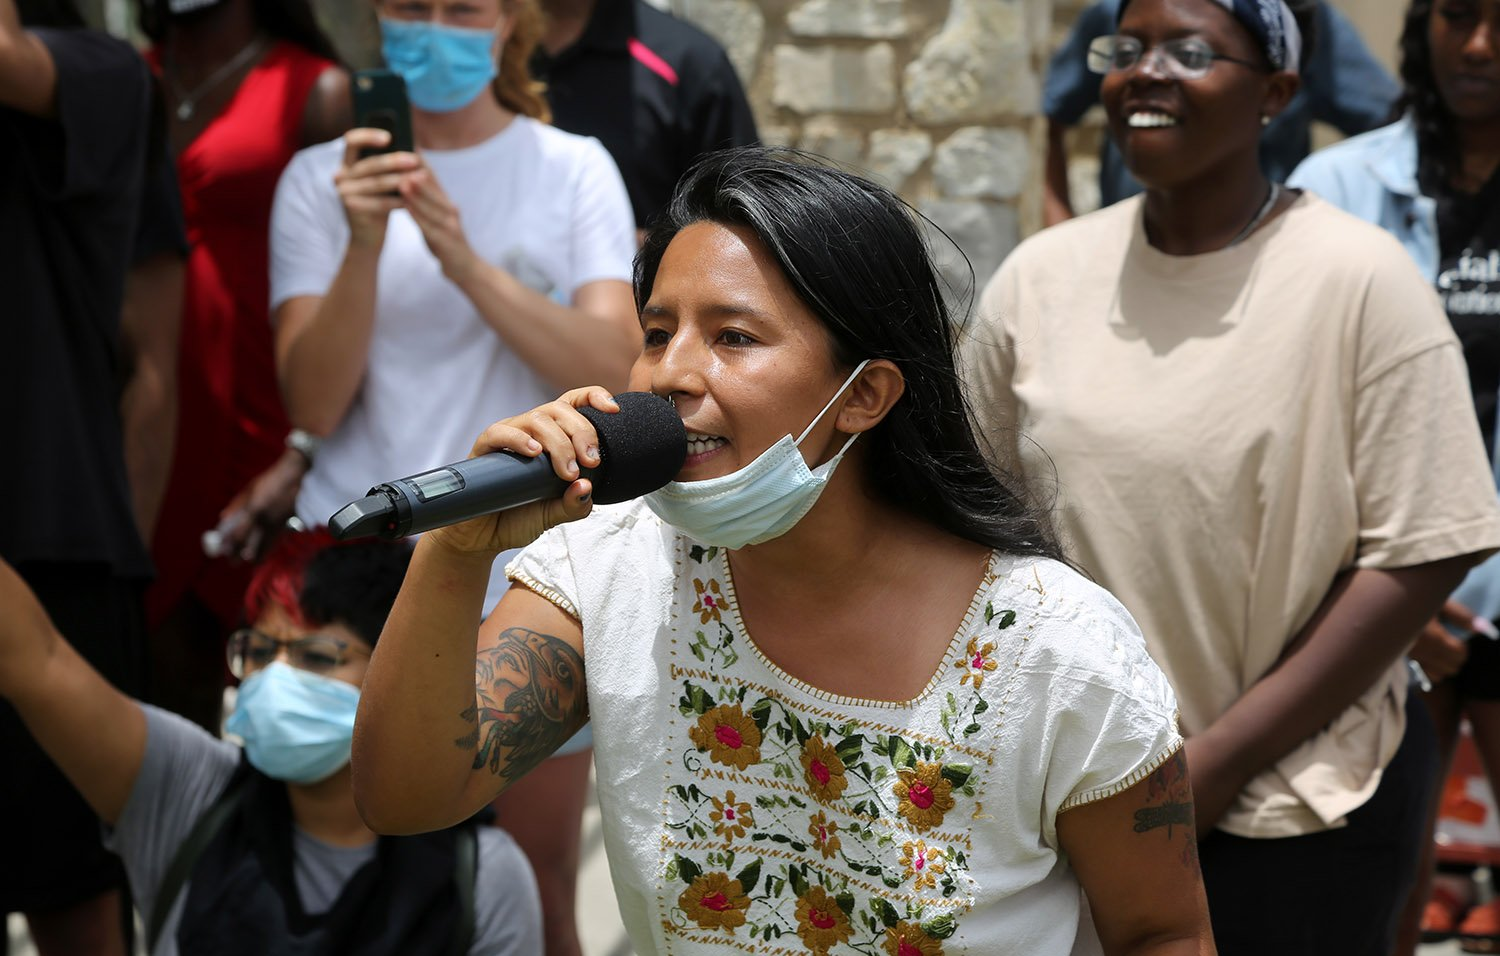 Ceiba speaks to a group of roughly 50 advocates for the removal of the Christopher Columbus statue during a protest Saturday, June 27, 2020, at Columbus Park, 200 Columbus St. Photo by Ben Olivo | Heron